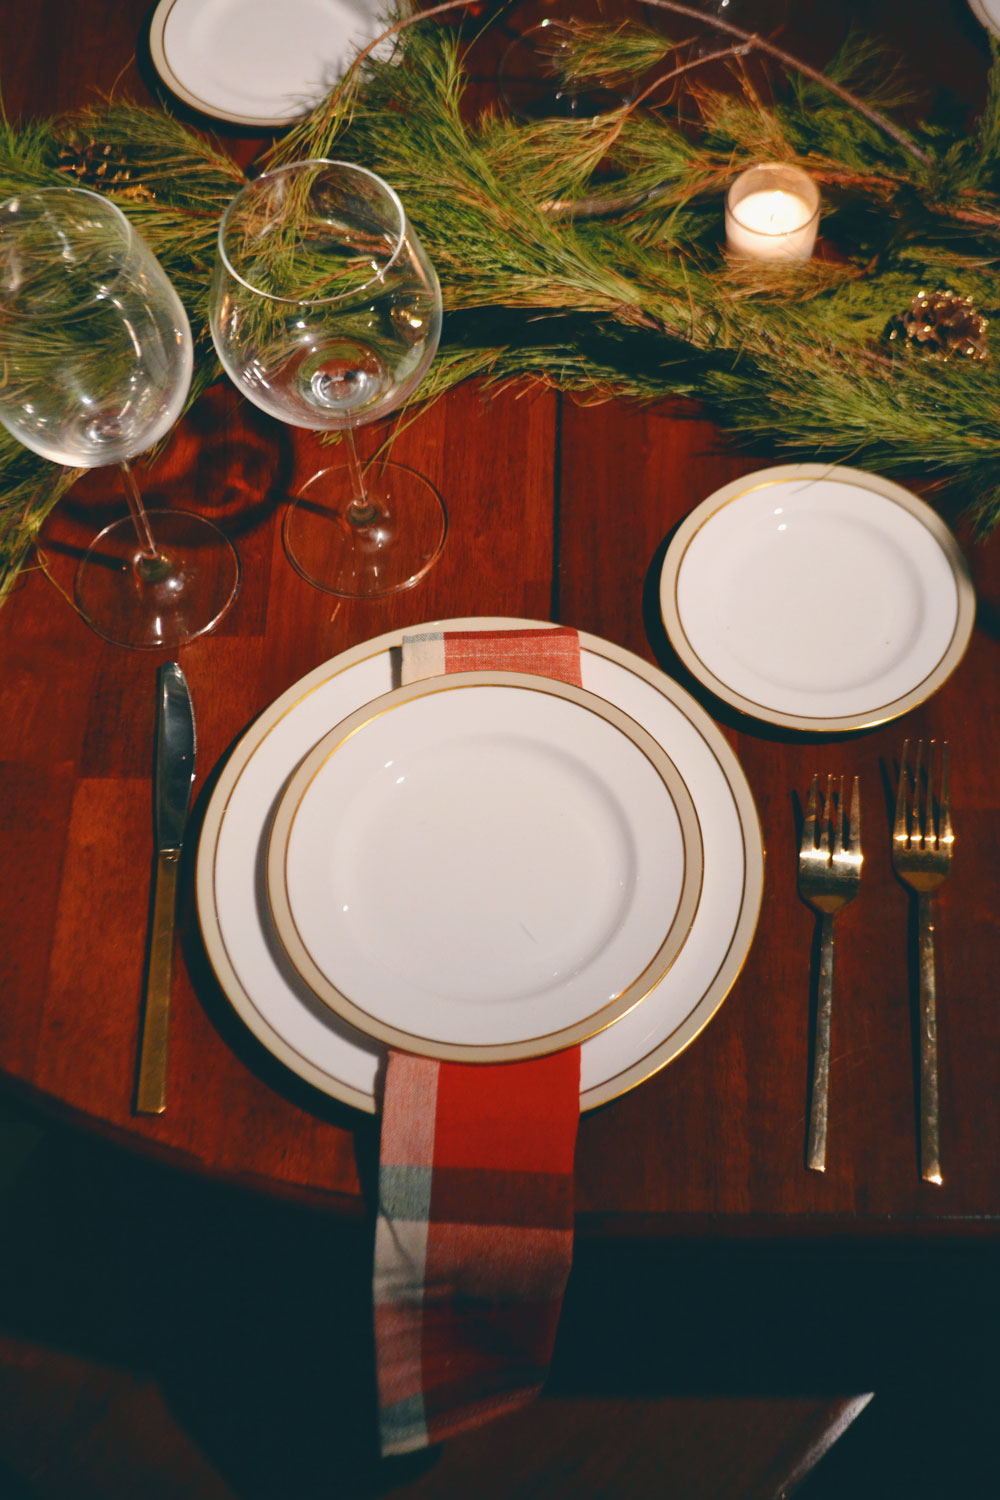 christmas-eve-table-setting-1.jpg